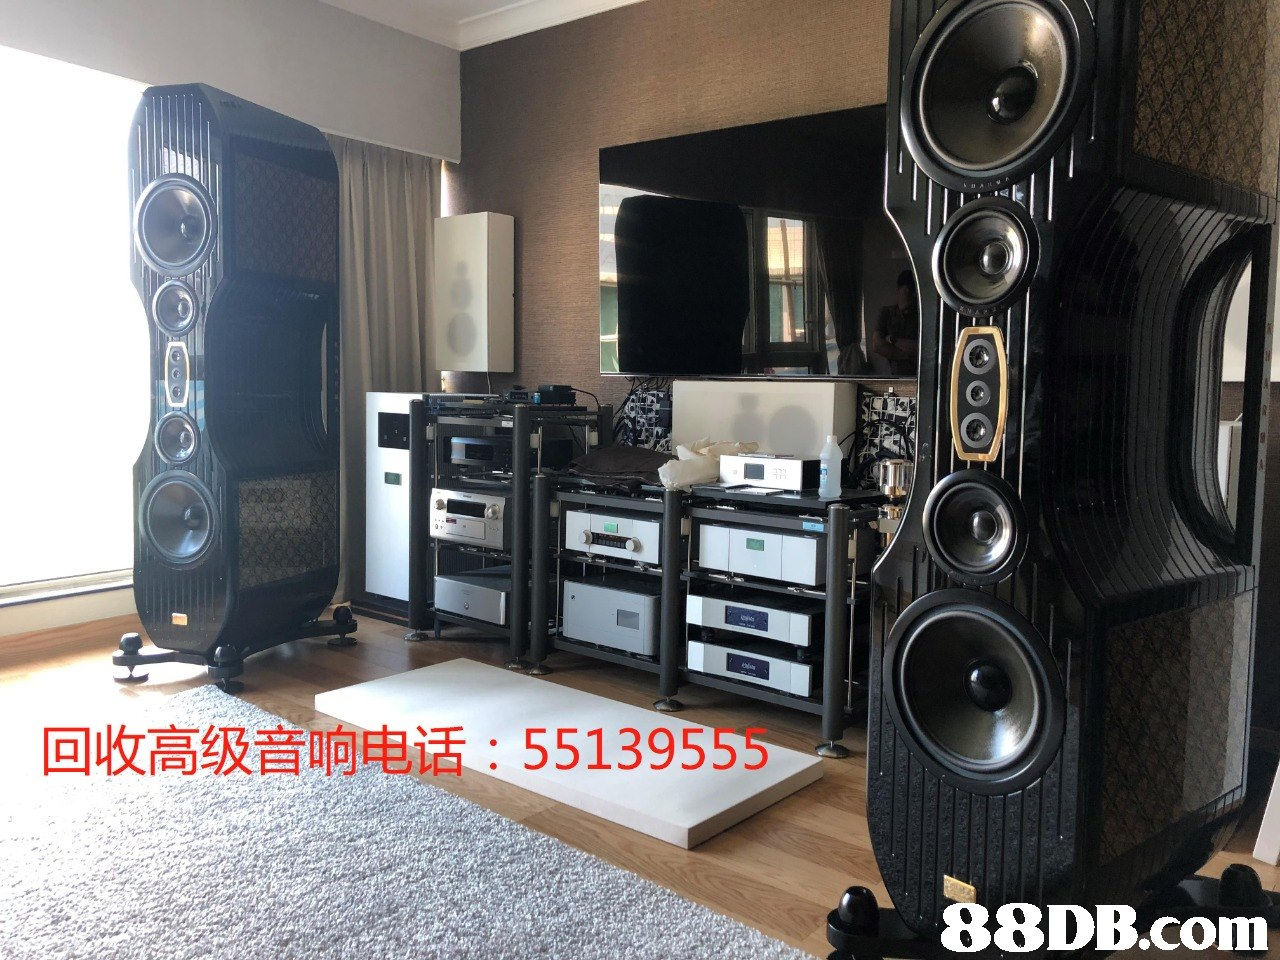 回收高级音响电话: 55139555 .   Loudspeaker,Subwoofer,Audio equipment,Electronics,Room